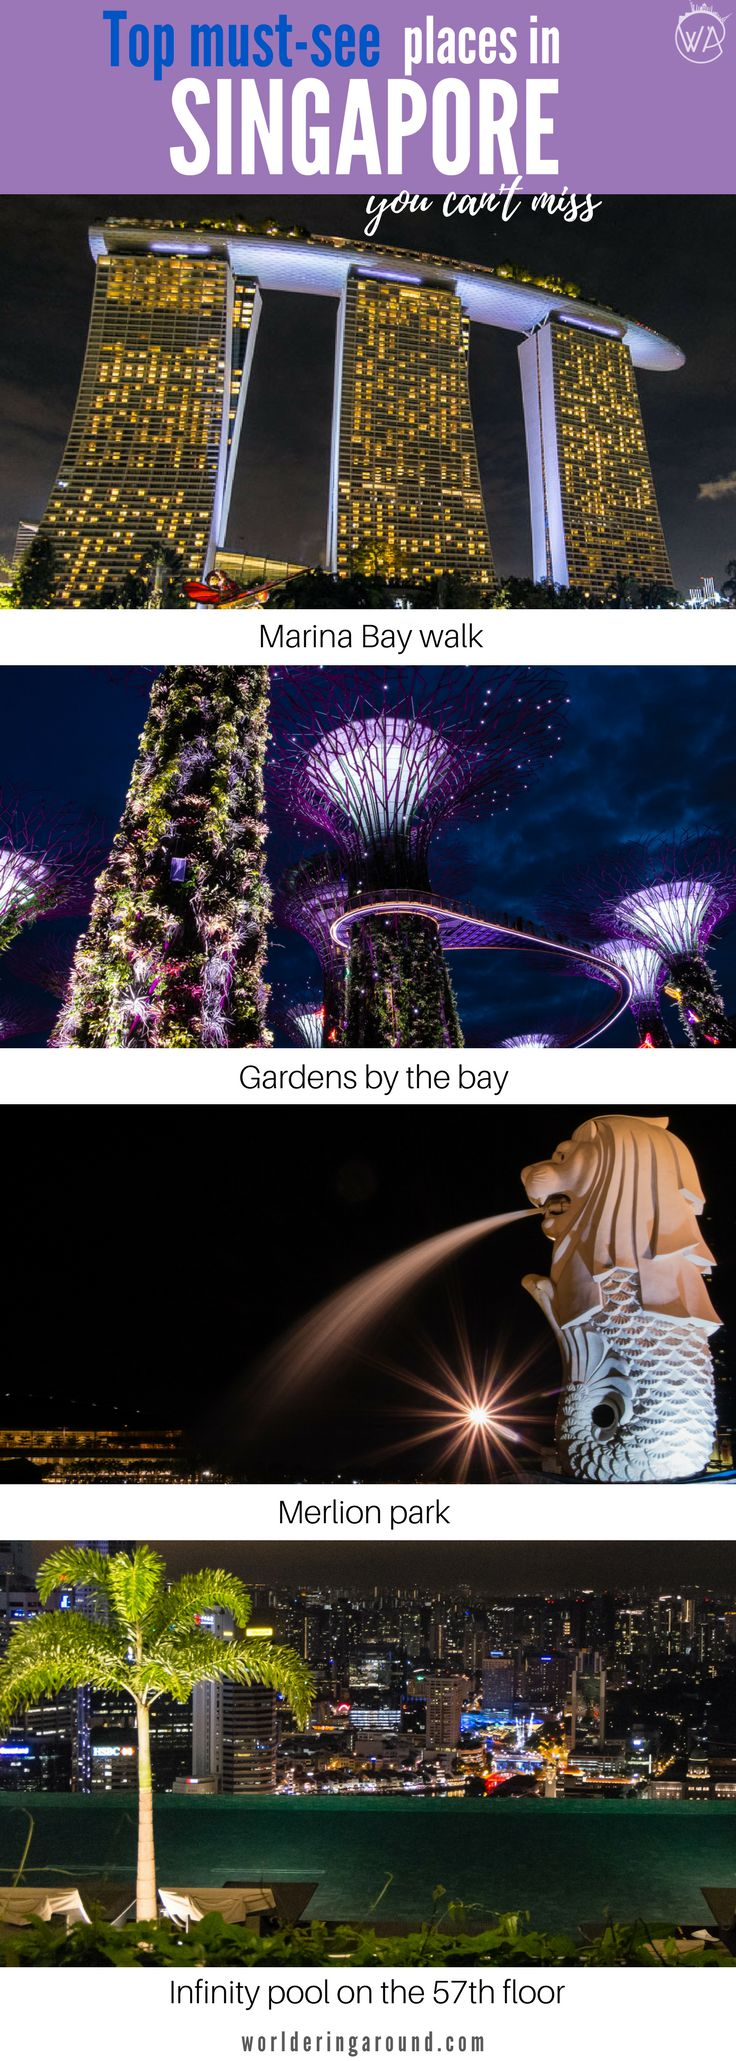 Explore the top must-see places in Singapore. Discover the magic of Singapore and the best things to do and see in Singapore in a day. Find out how to spend 24 hours in Singapore, what to visit, Singapore travel ideas | Worldering around #Singapore #Asia #travel #blogpost #traveltips #bucketlist